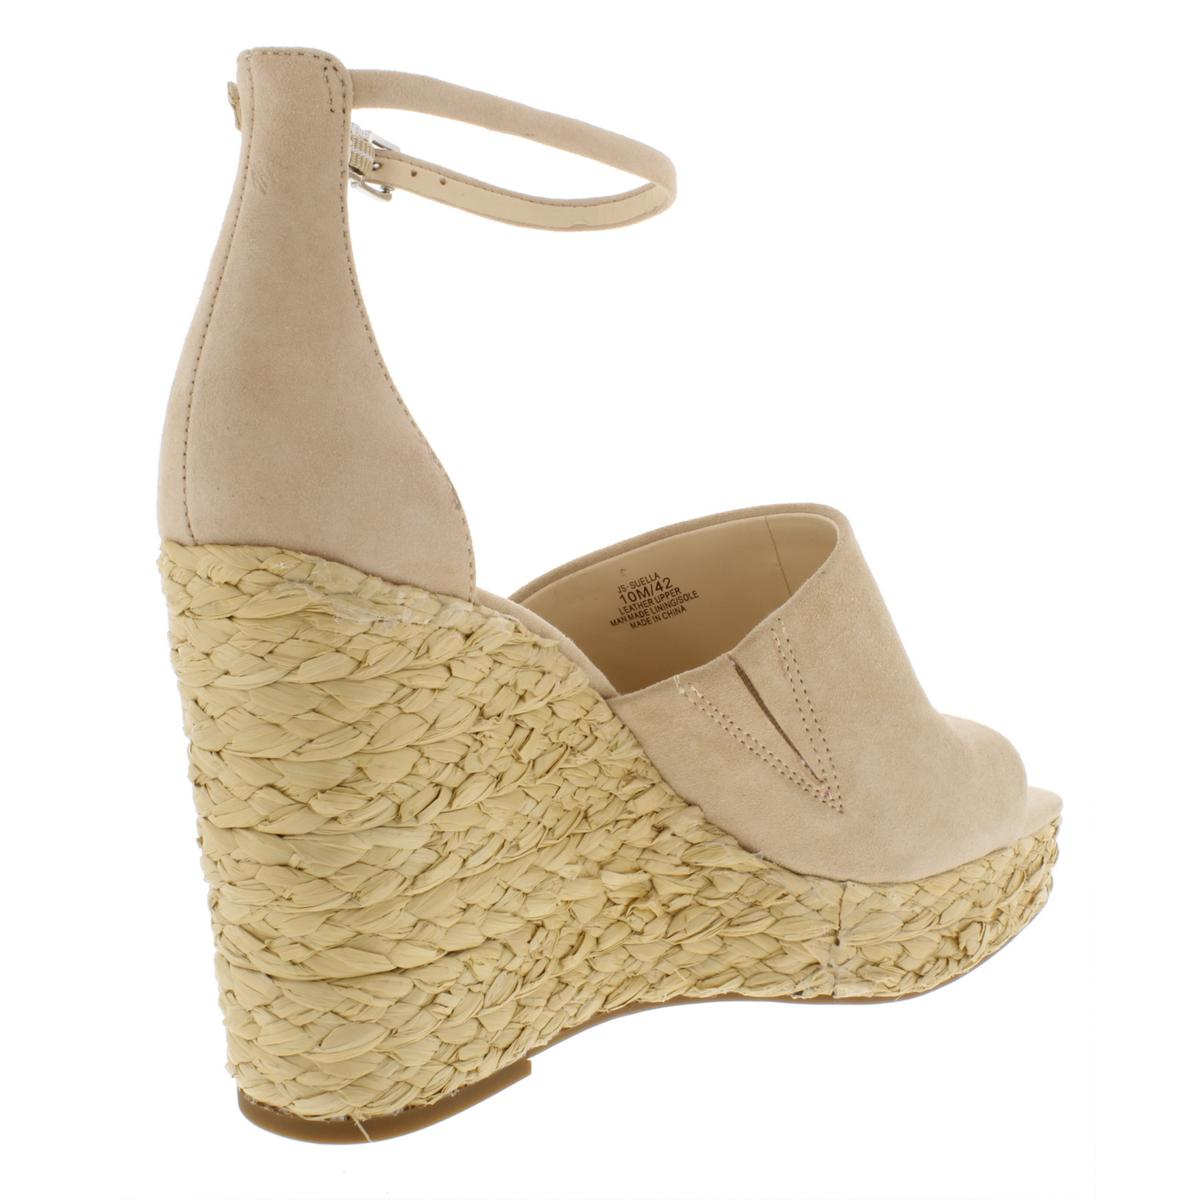 Jessica-Simpson-Womens-Suella-Suede-Espadrille-Wedge-Sandals-Shoes-BHFO-5228 thumbnail 4